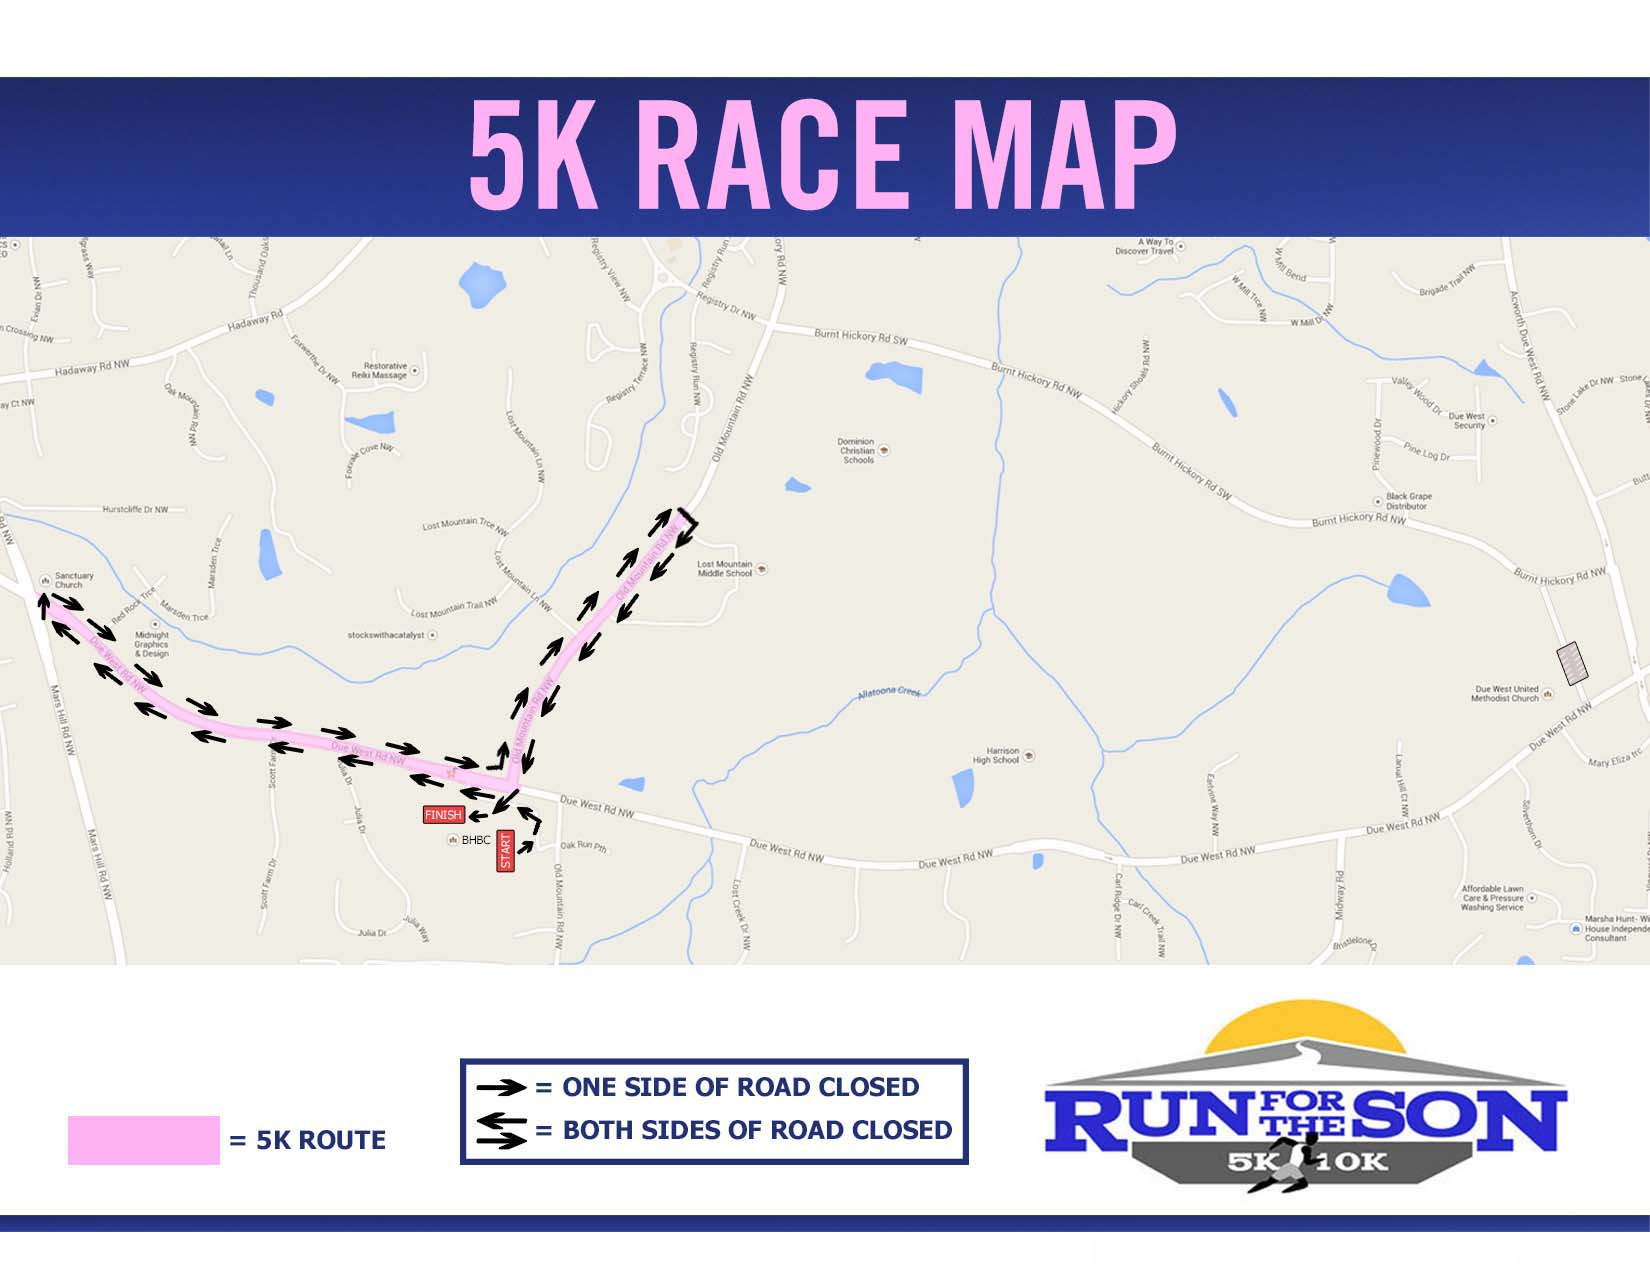 peachtree road race map with Runfortheson5k10k on 45039498 likewise 5959389907 as well High Speed Boat Crash Caught On Camera besides 2013 Peachtree Road Race Shadow Run Fob Fenty Afghanistan also Peachtree Road Race Sign Up 2014.